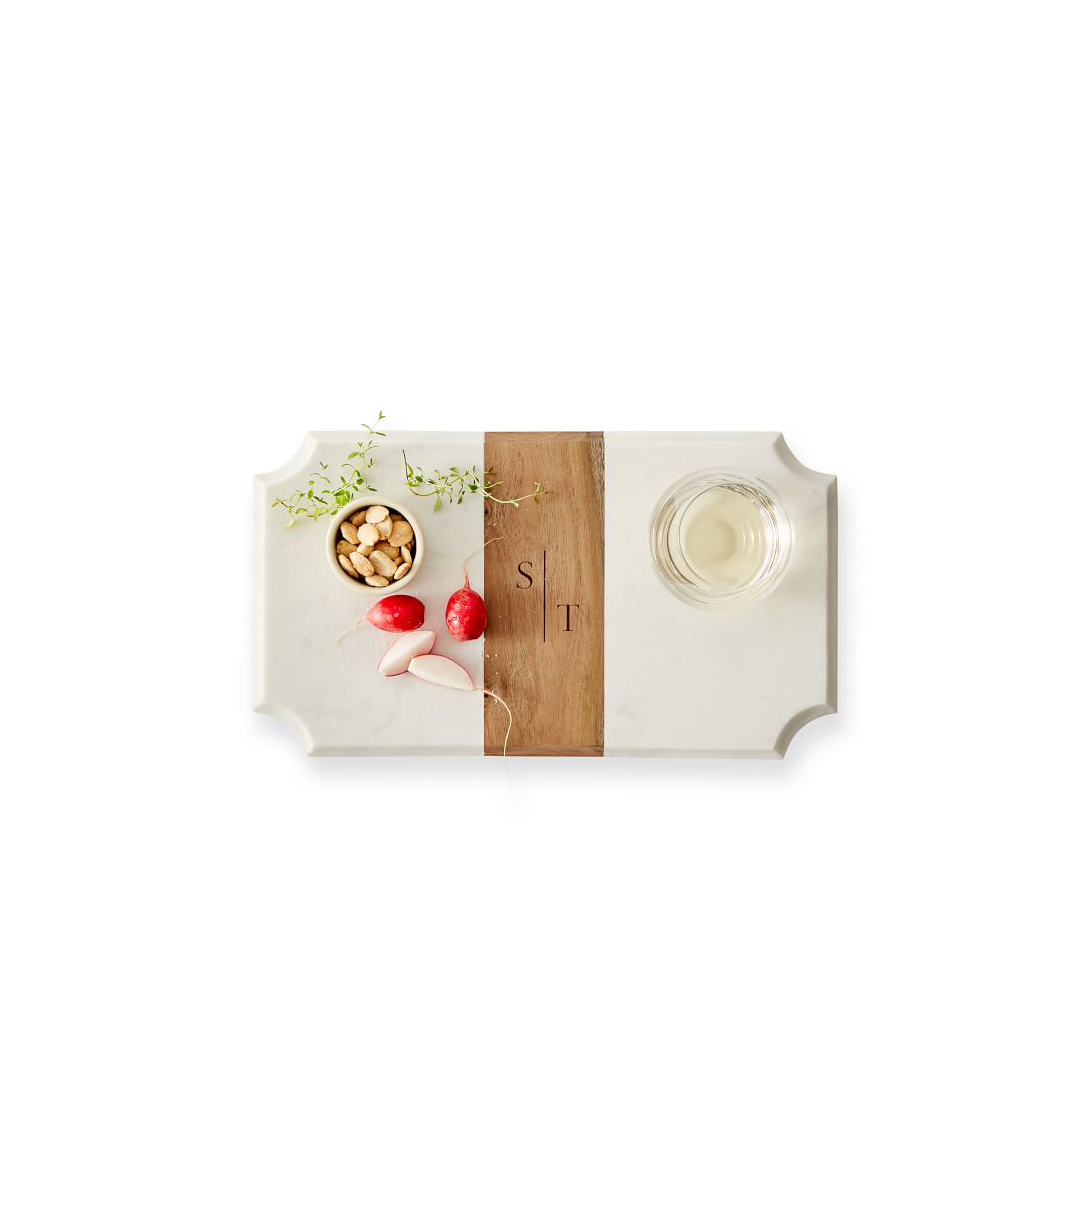 marble-cheese-board-newlywed-gifts